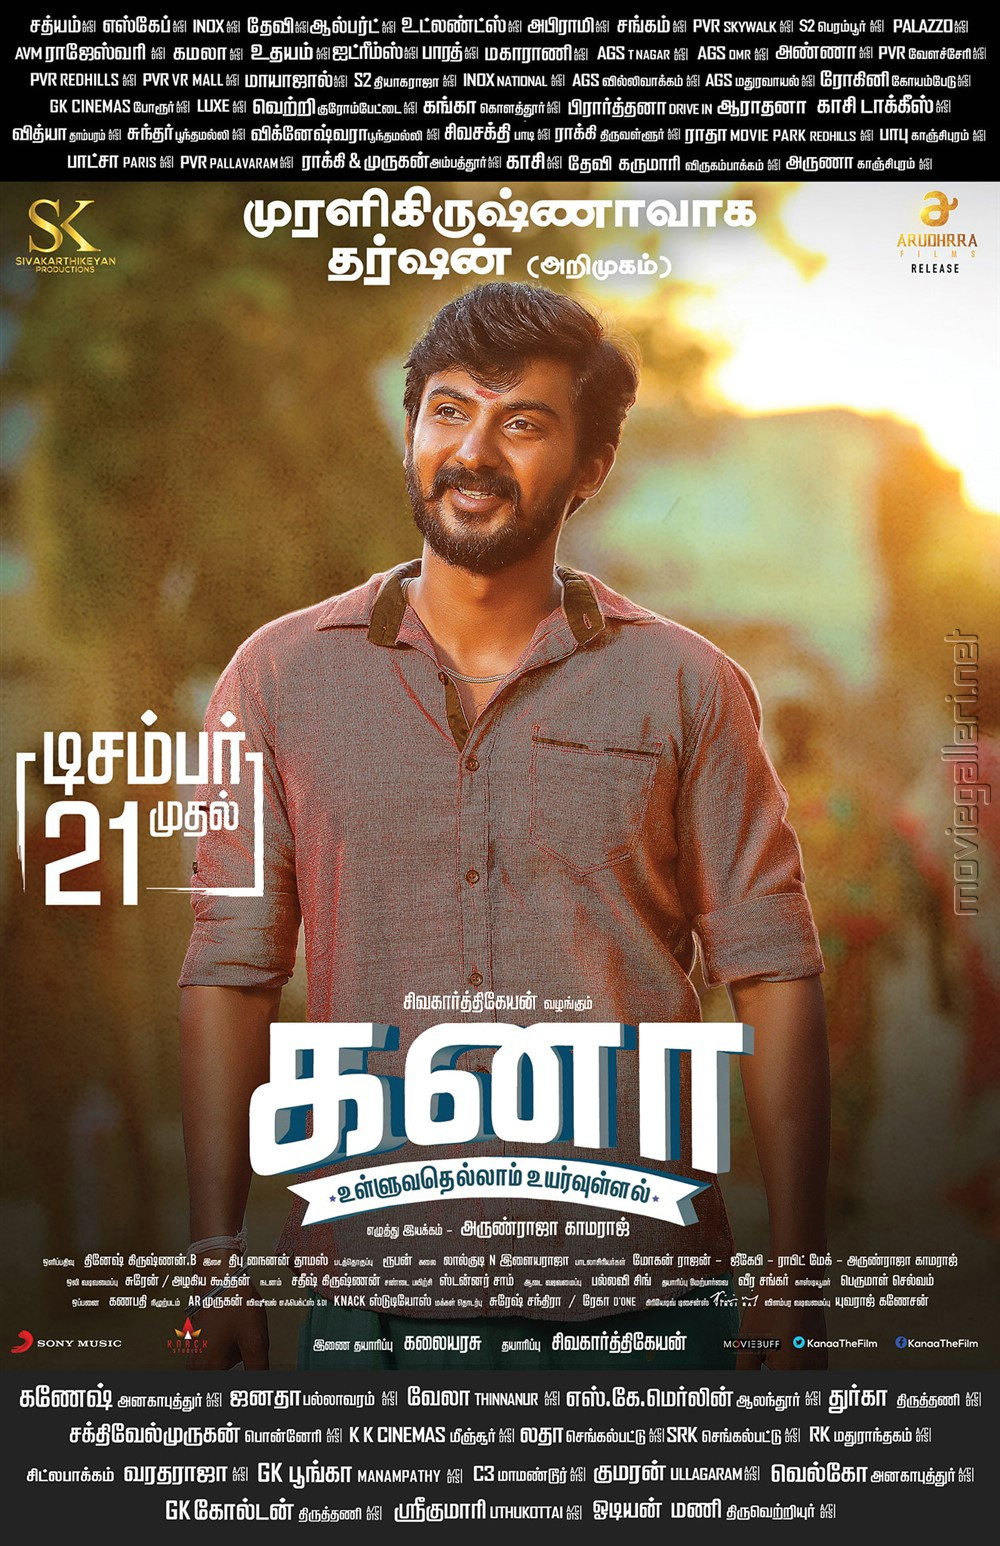 Darshan in Kanaa Movie Release Posters